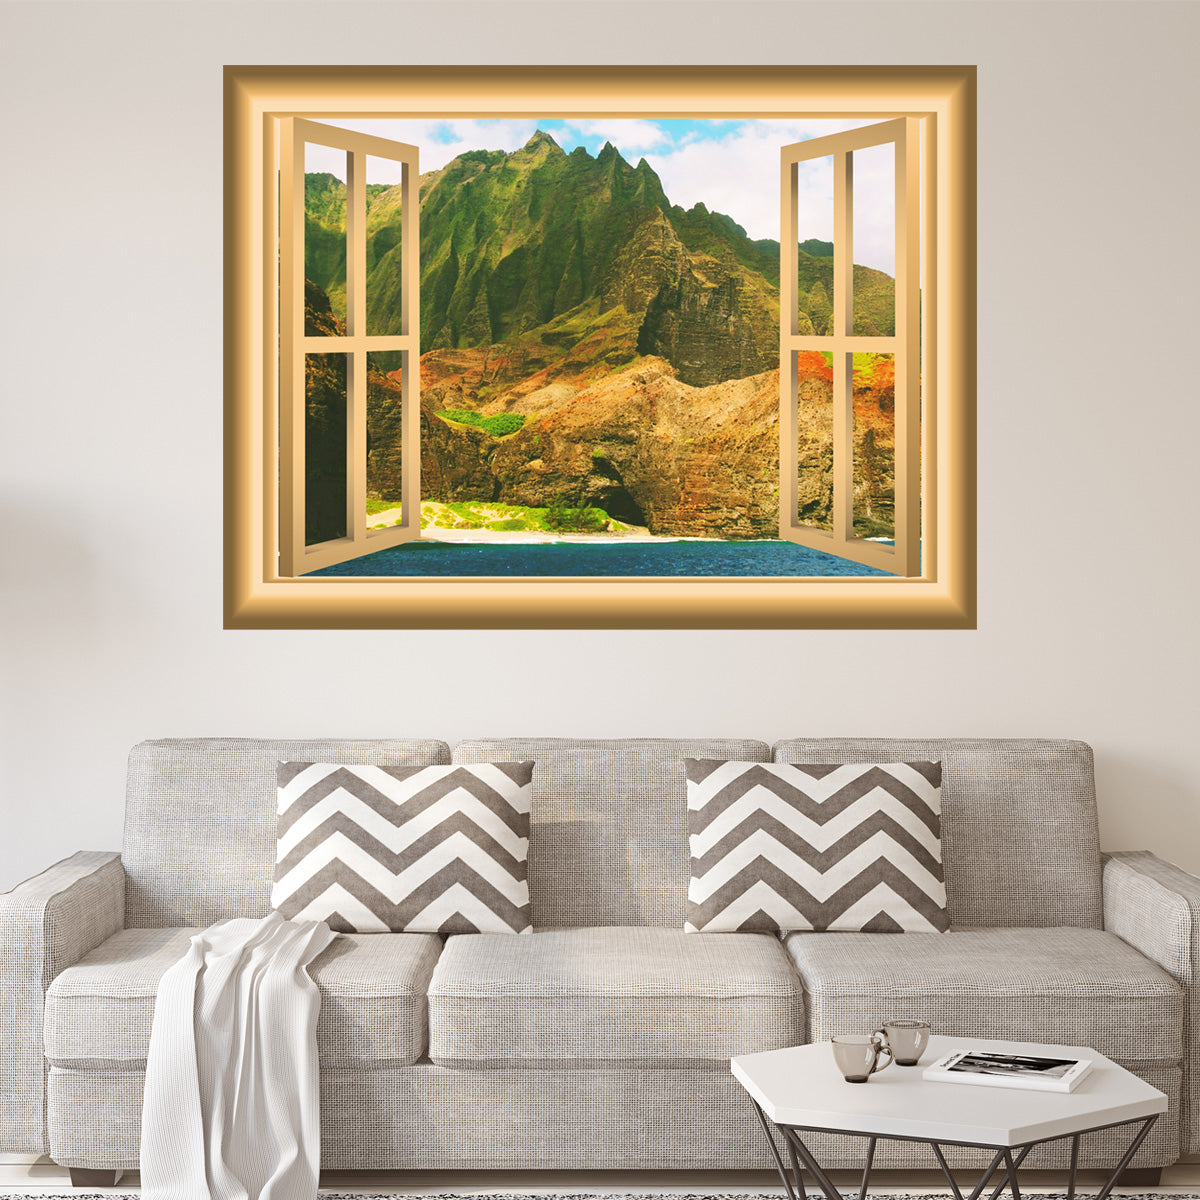 VWAQ Mountain Peel and Stick Wall Art Window Frame Wall Decal - NW85